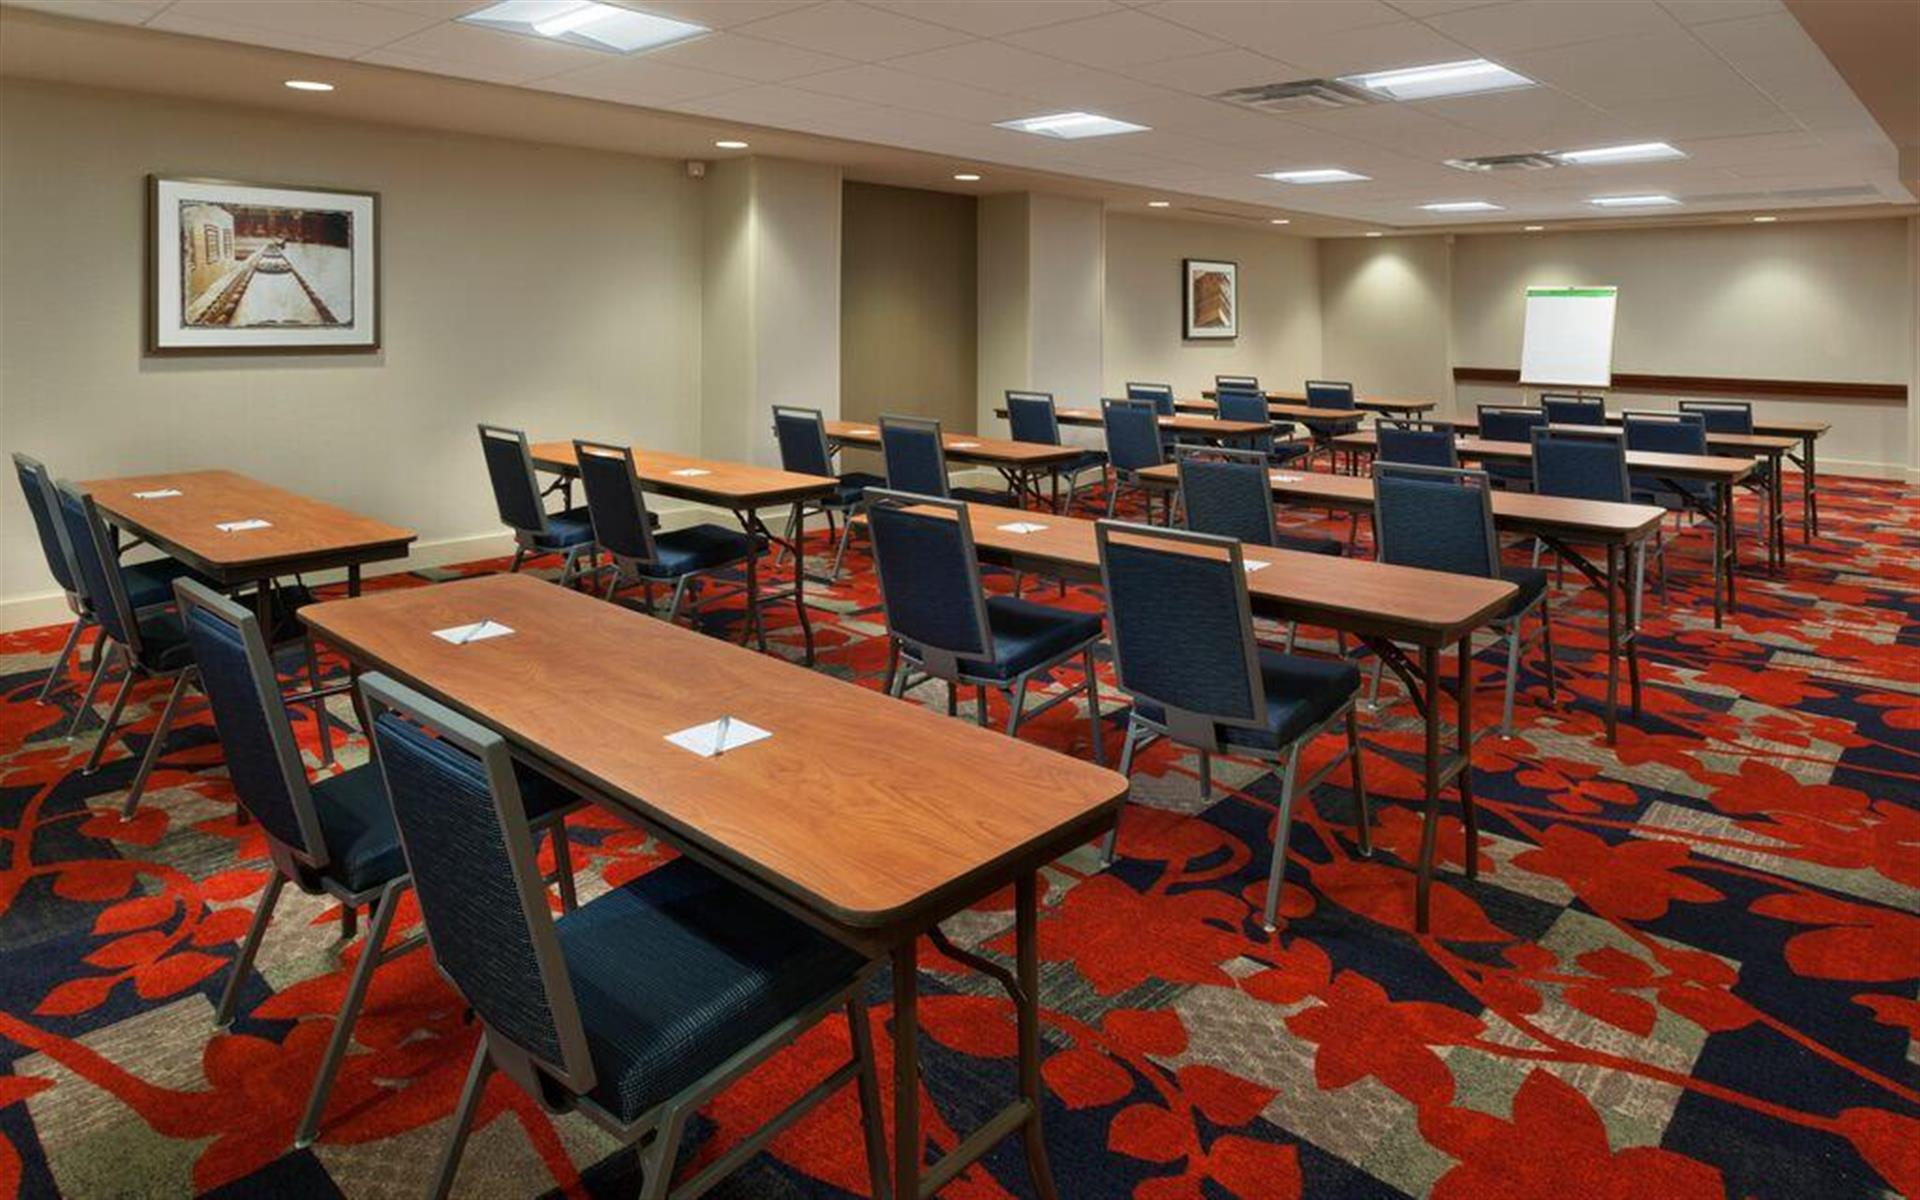 Hampton Inn Washington DC/Whitehouse - Kiplinger Room